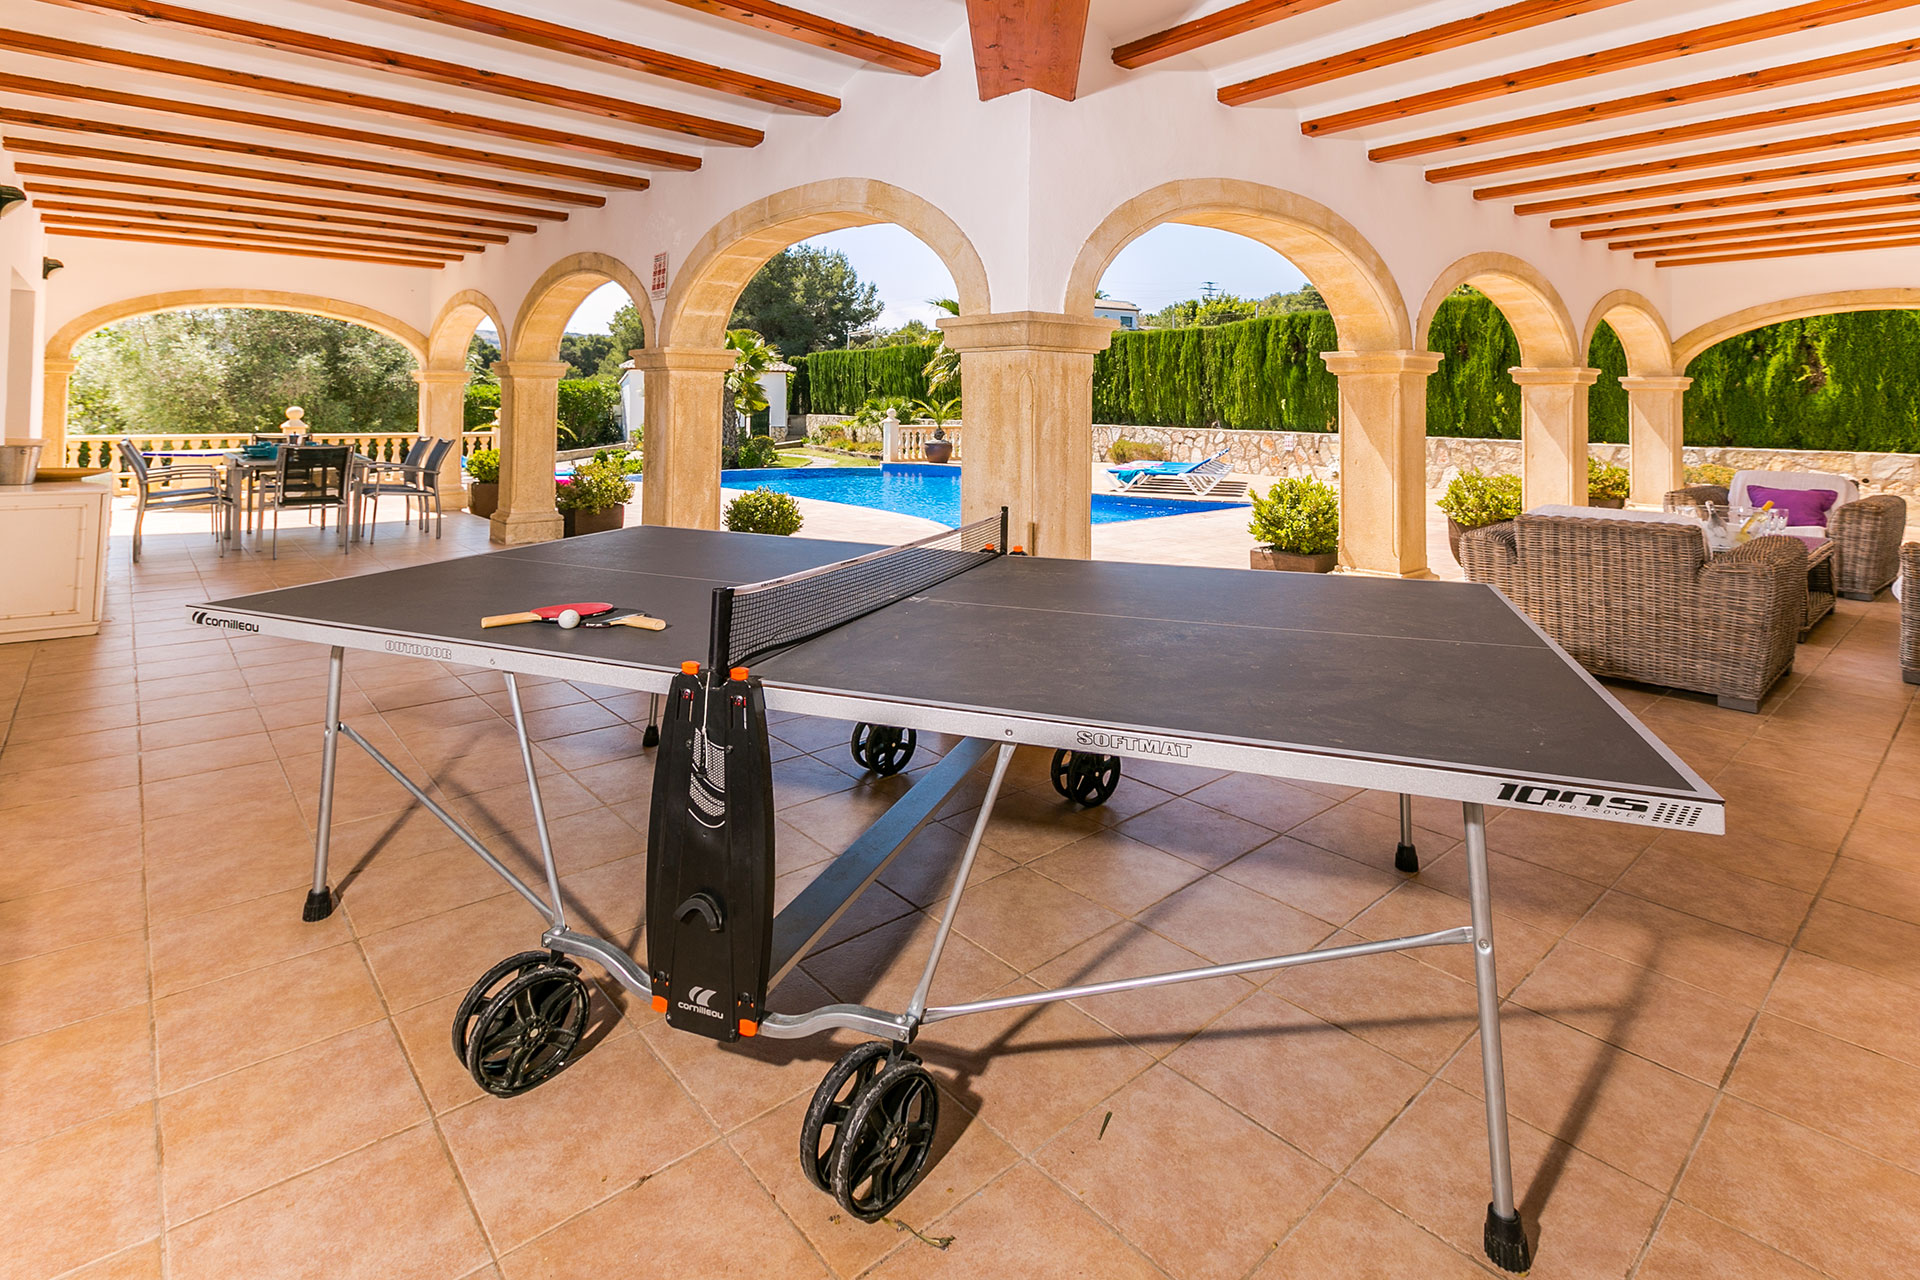 Homeaway javea Table Tennis